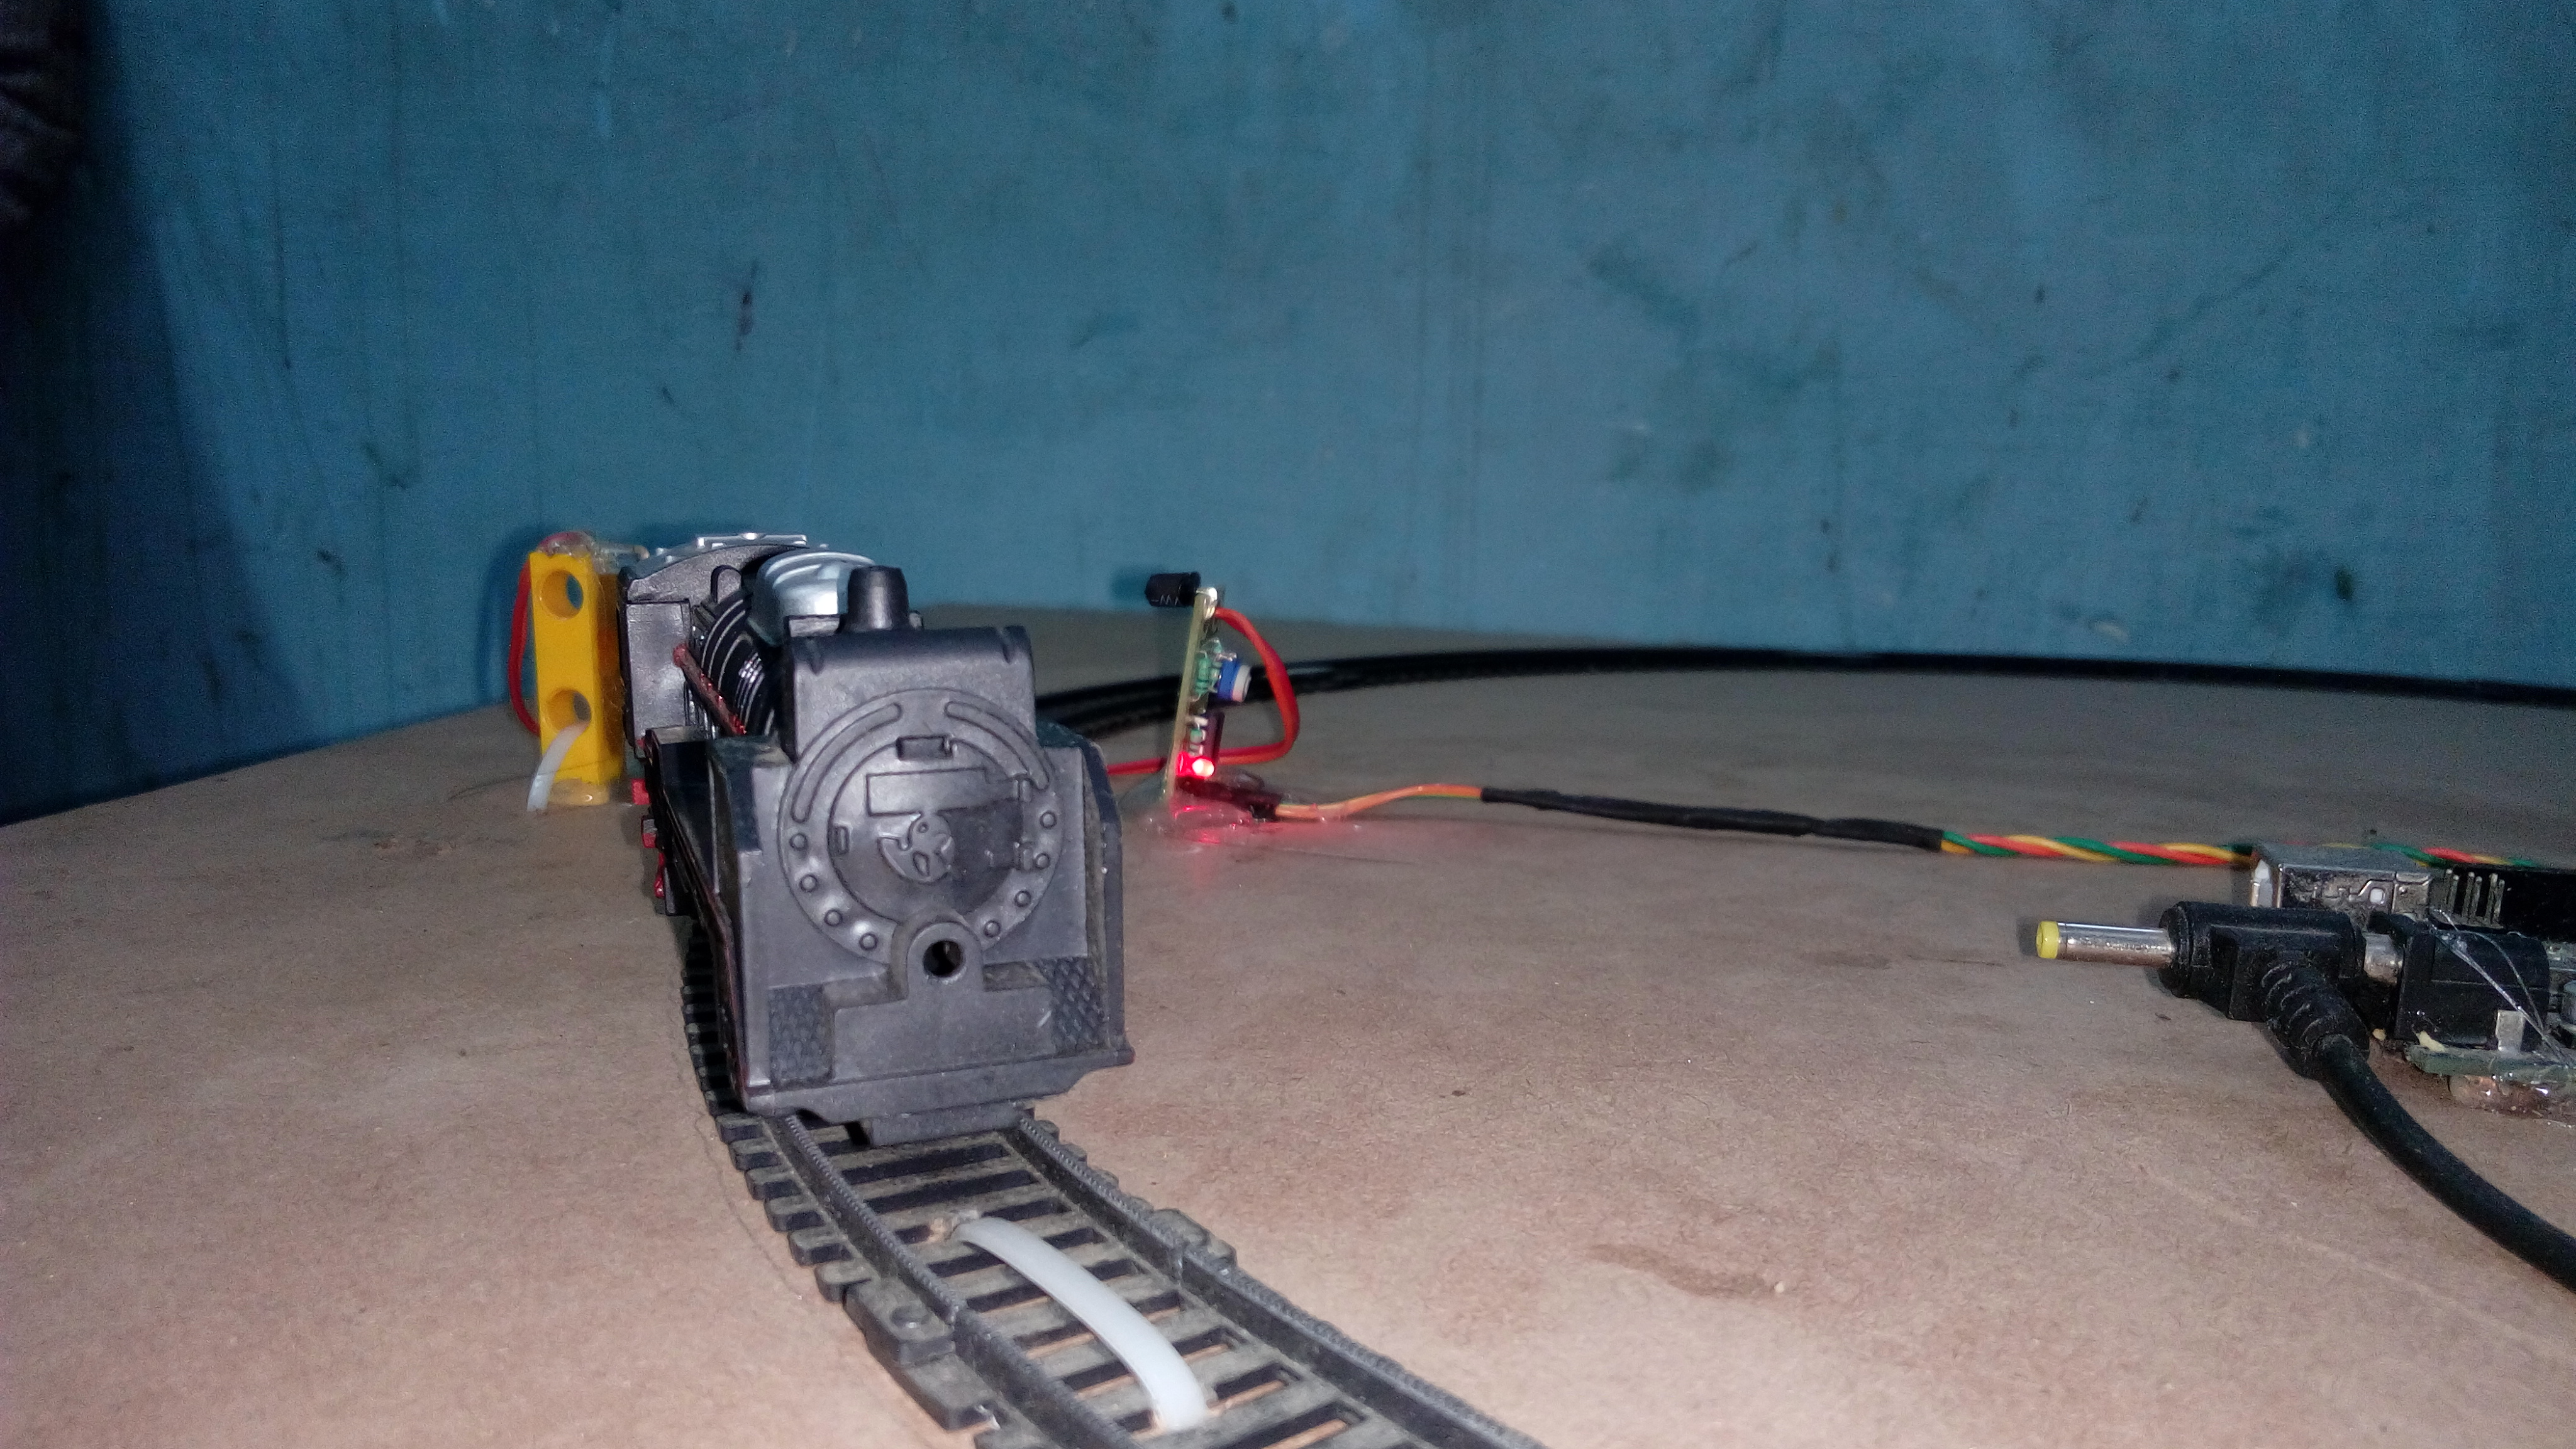 Automatic Railway Crossing Using Arduino 12v Stepper Motor Geared 4 Phase 5 Wires For Experiment Uno Or Other 2 L293d Driver Ic Shild 3 Two Ir Sensor One Dc 30 Rpm 12volt Power Supply Smps 6 A Toy Train